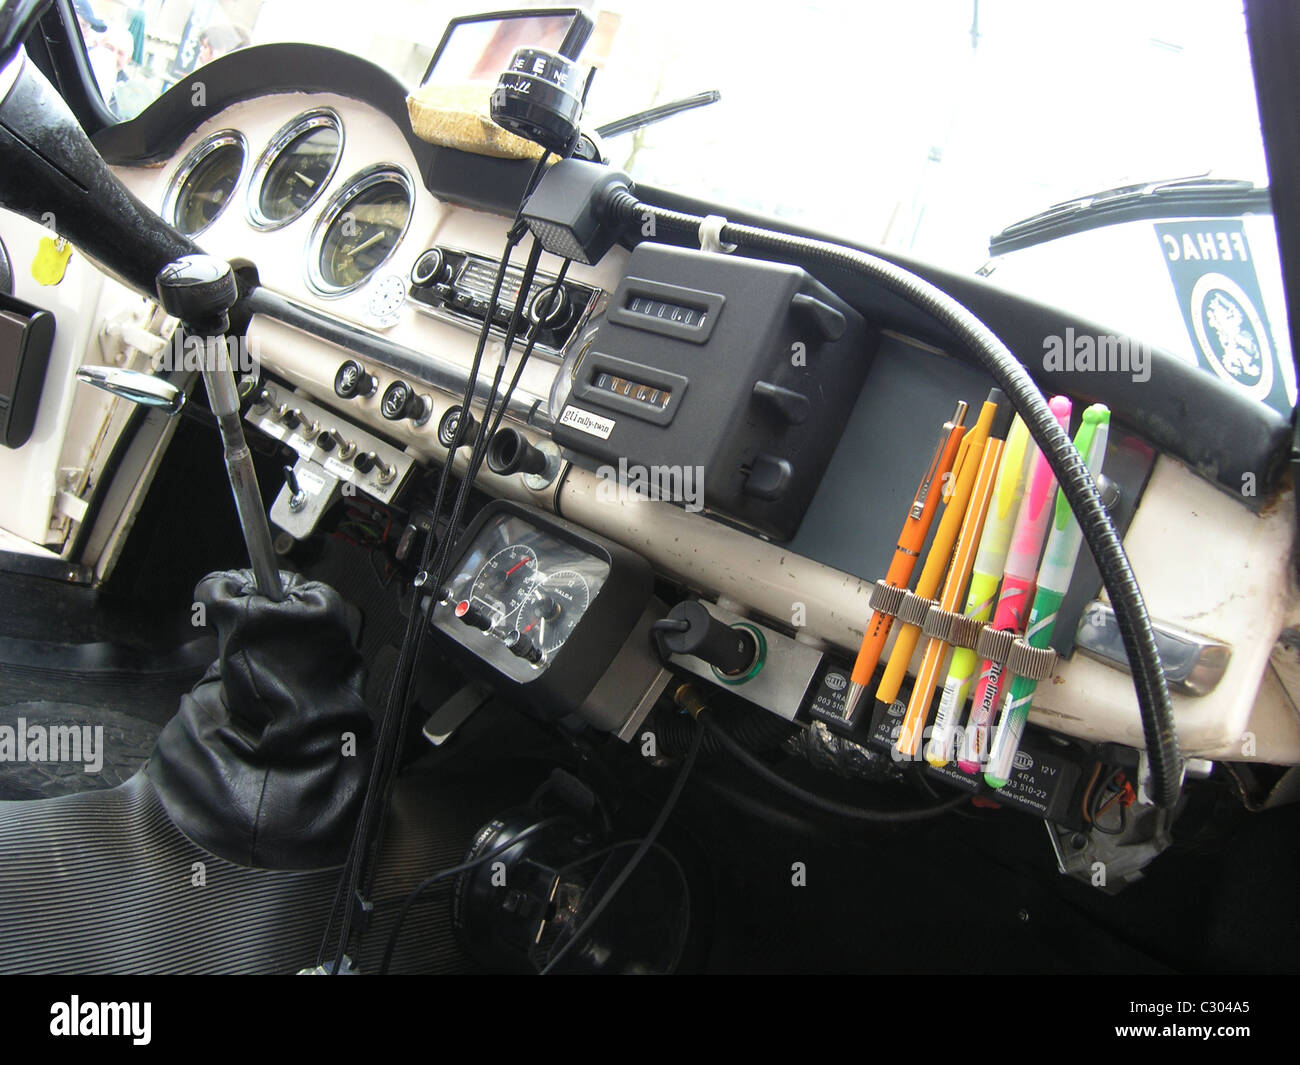 interior of classic alfa romeo rally car ready for competition stock photo royalty free image. Black Bedroom Furniture Sets. Home Design Ideas